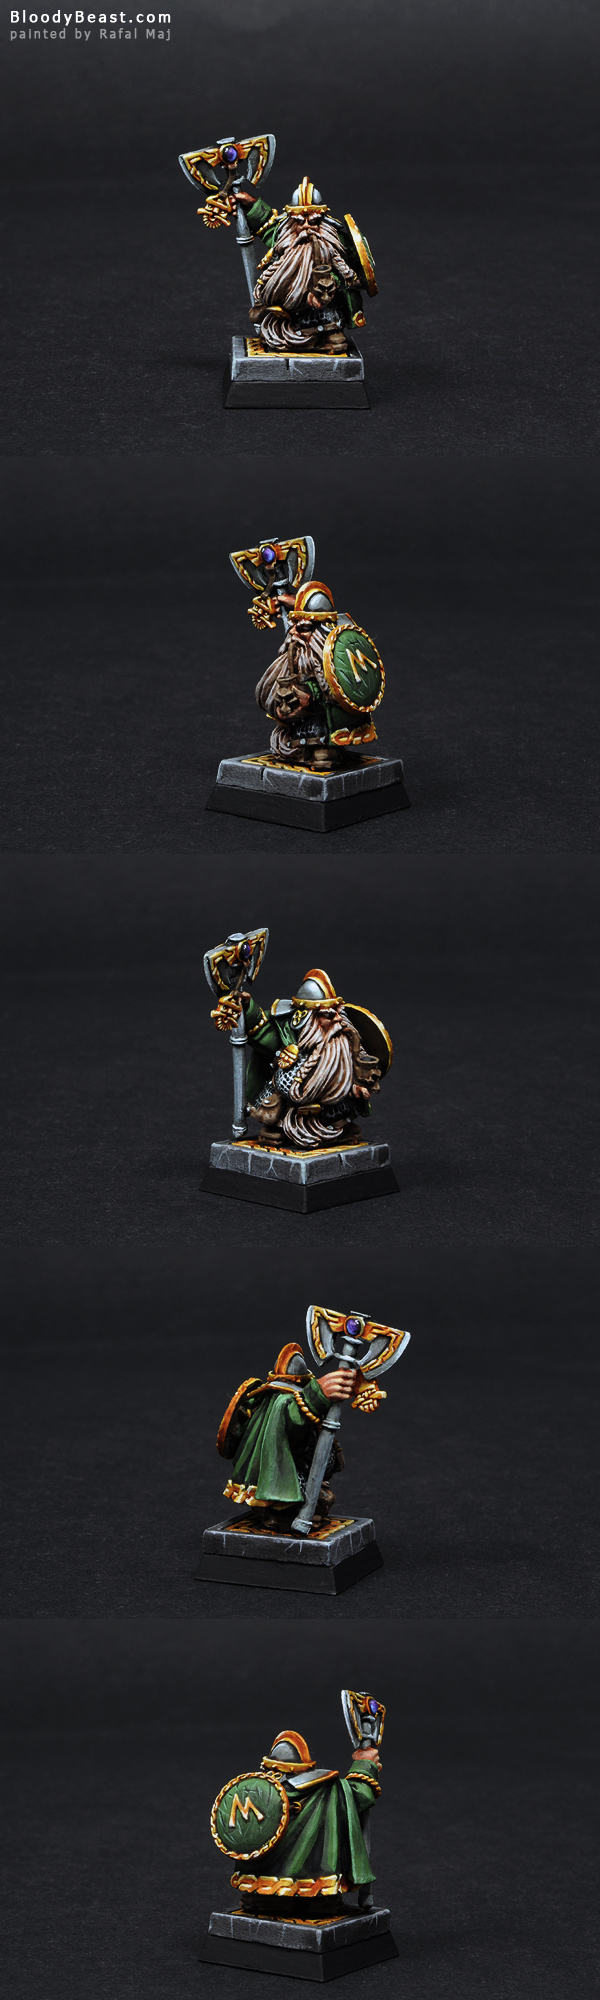 Dwarf Champion painted by Rafal Maj (BloodyBeast.com)